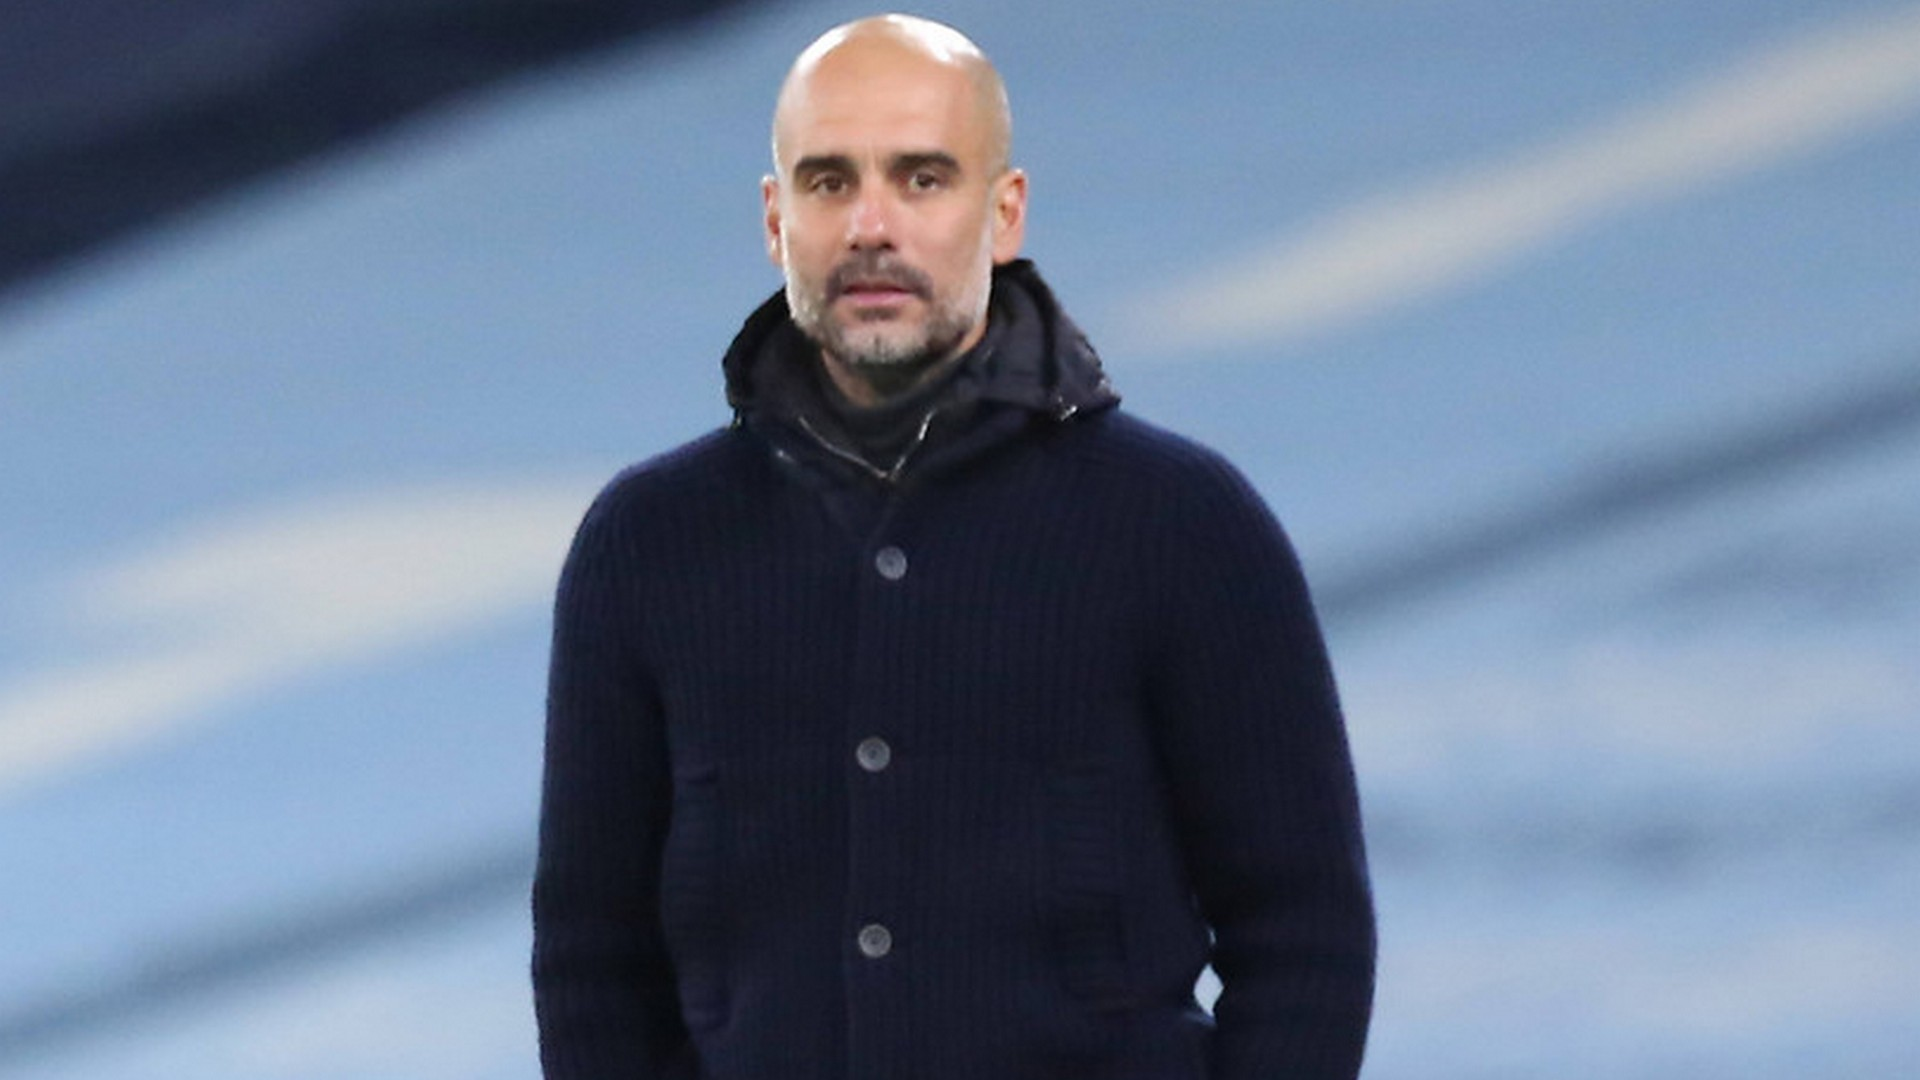 Guardiola insist City should not be judge with Champions League.